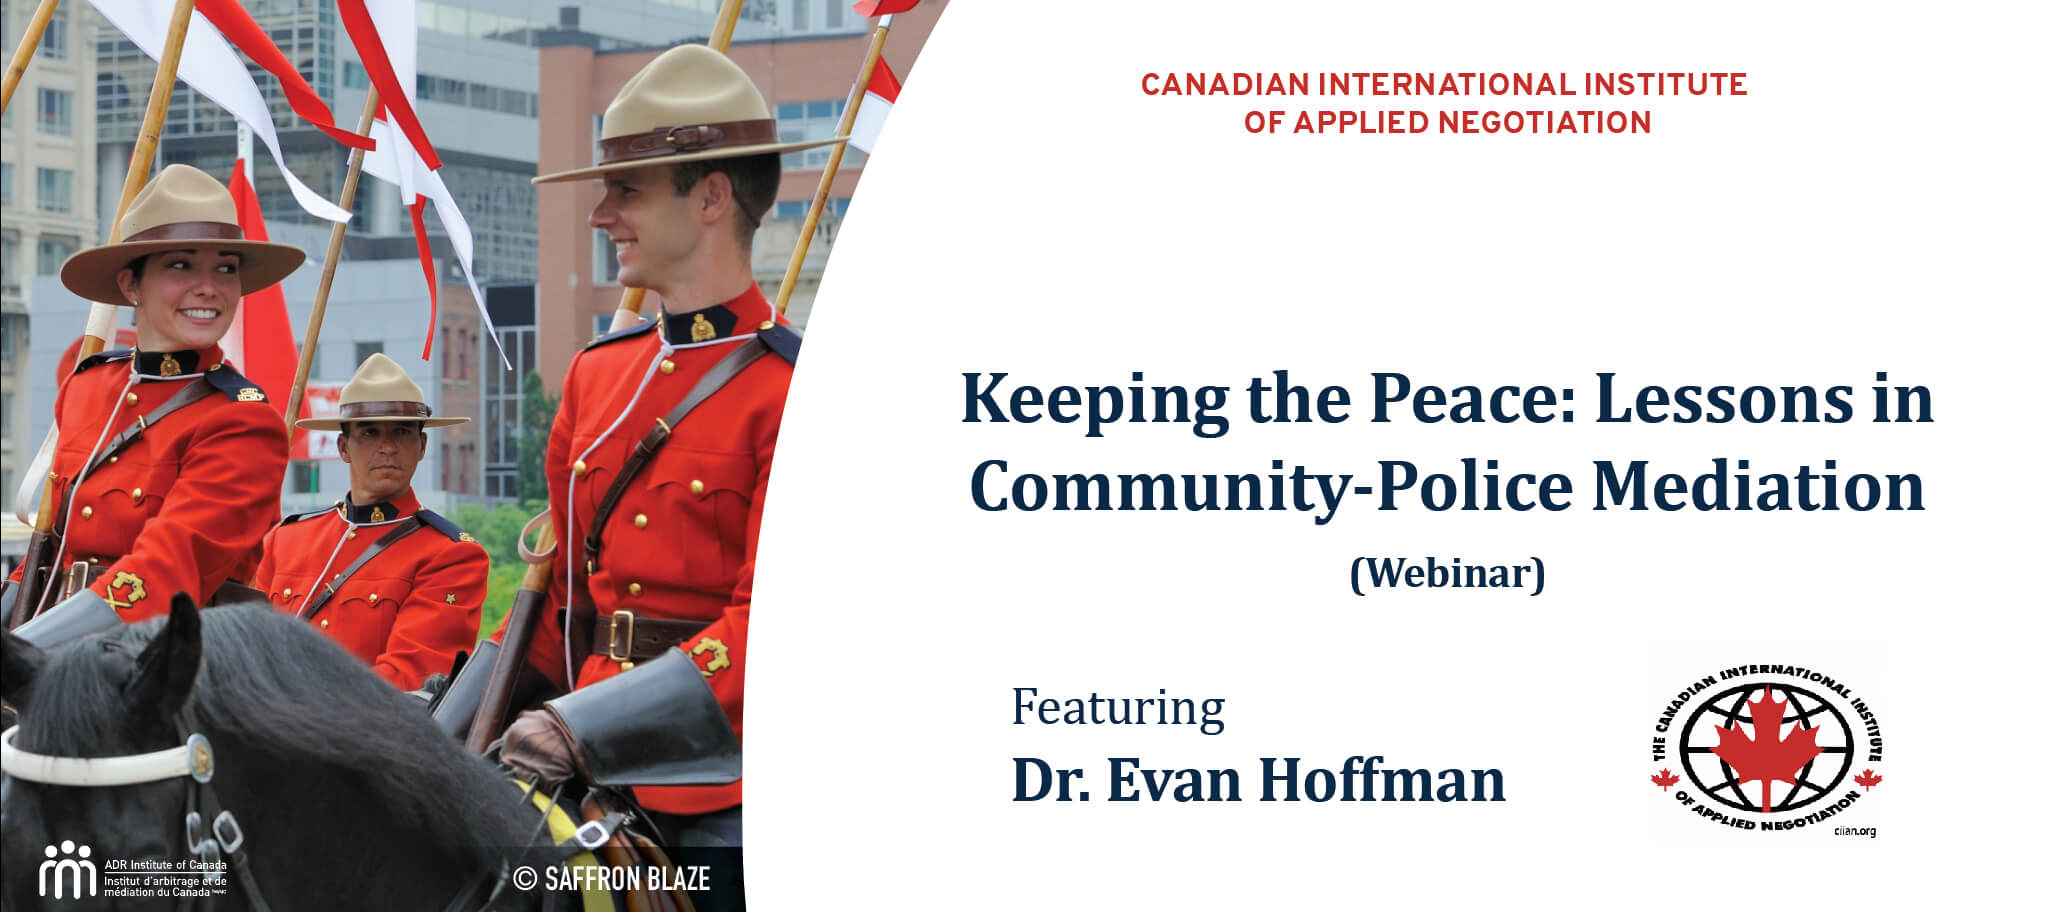 Keeping the Peace: Lessons in Community-Police Mediation